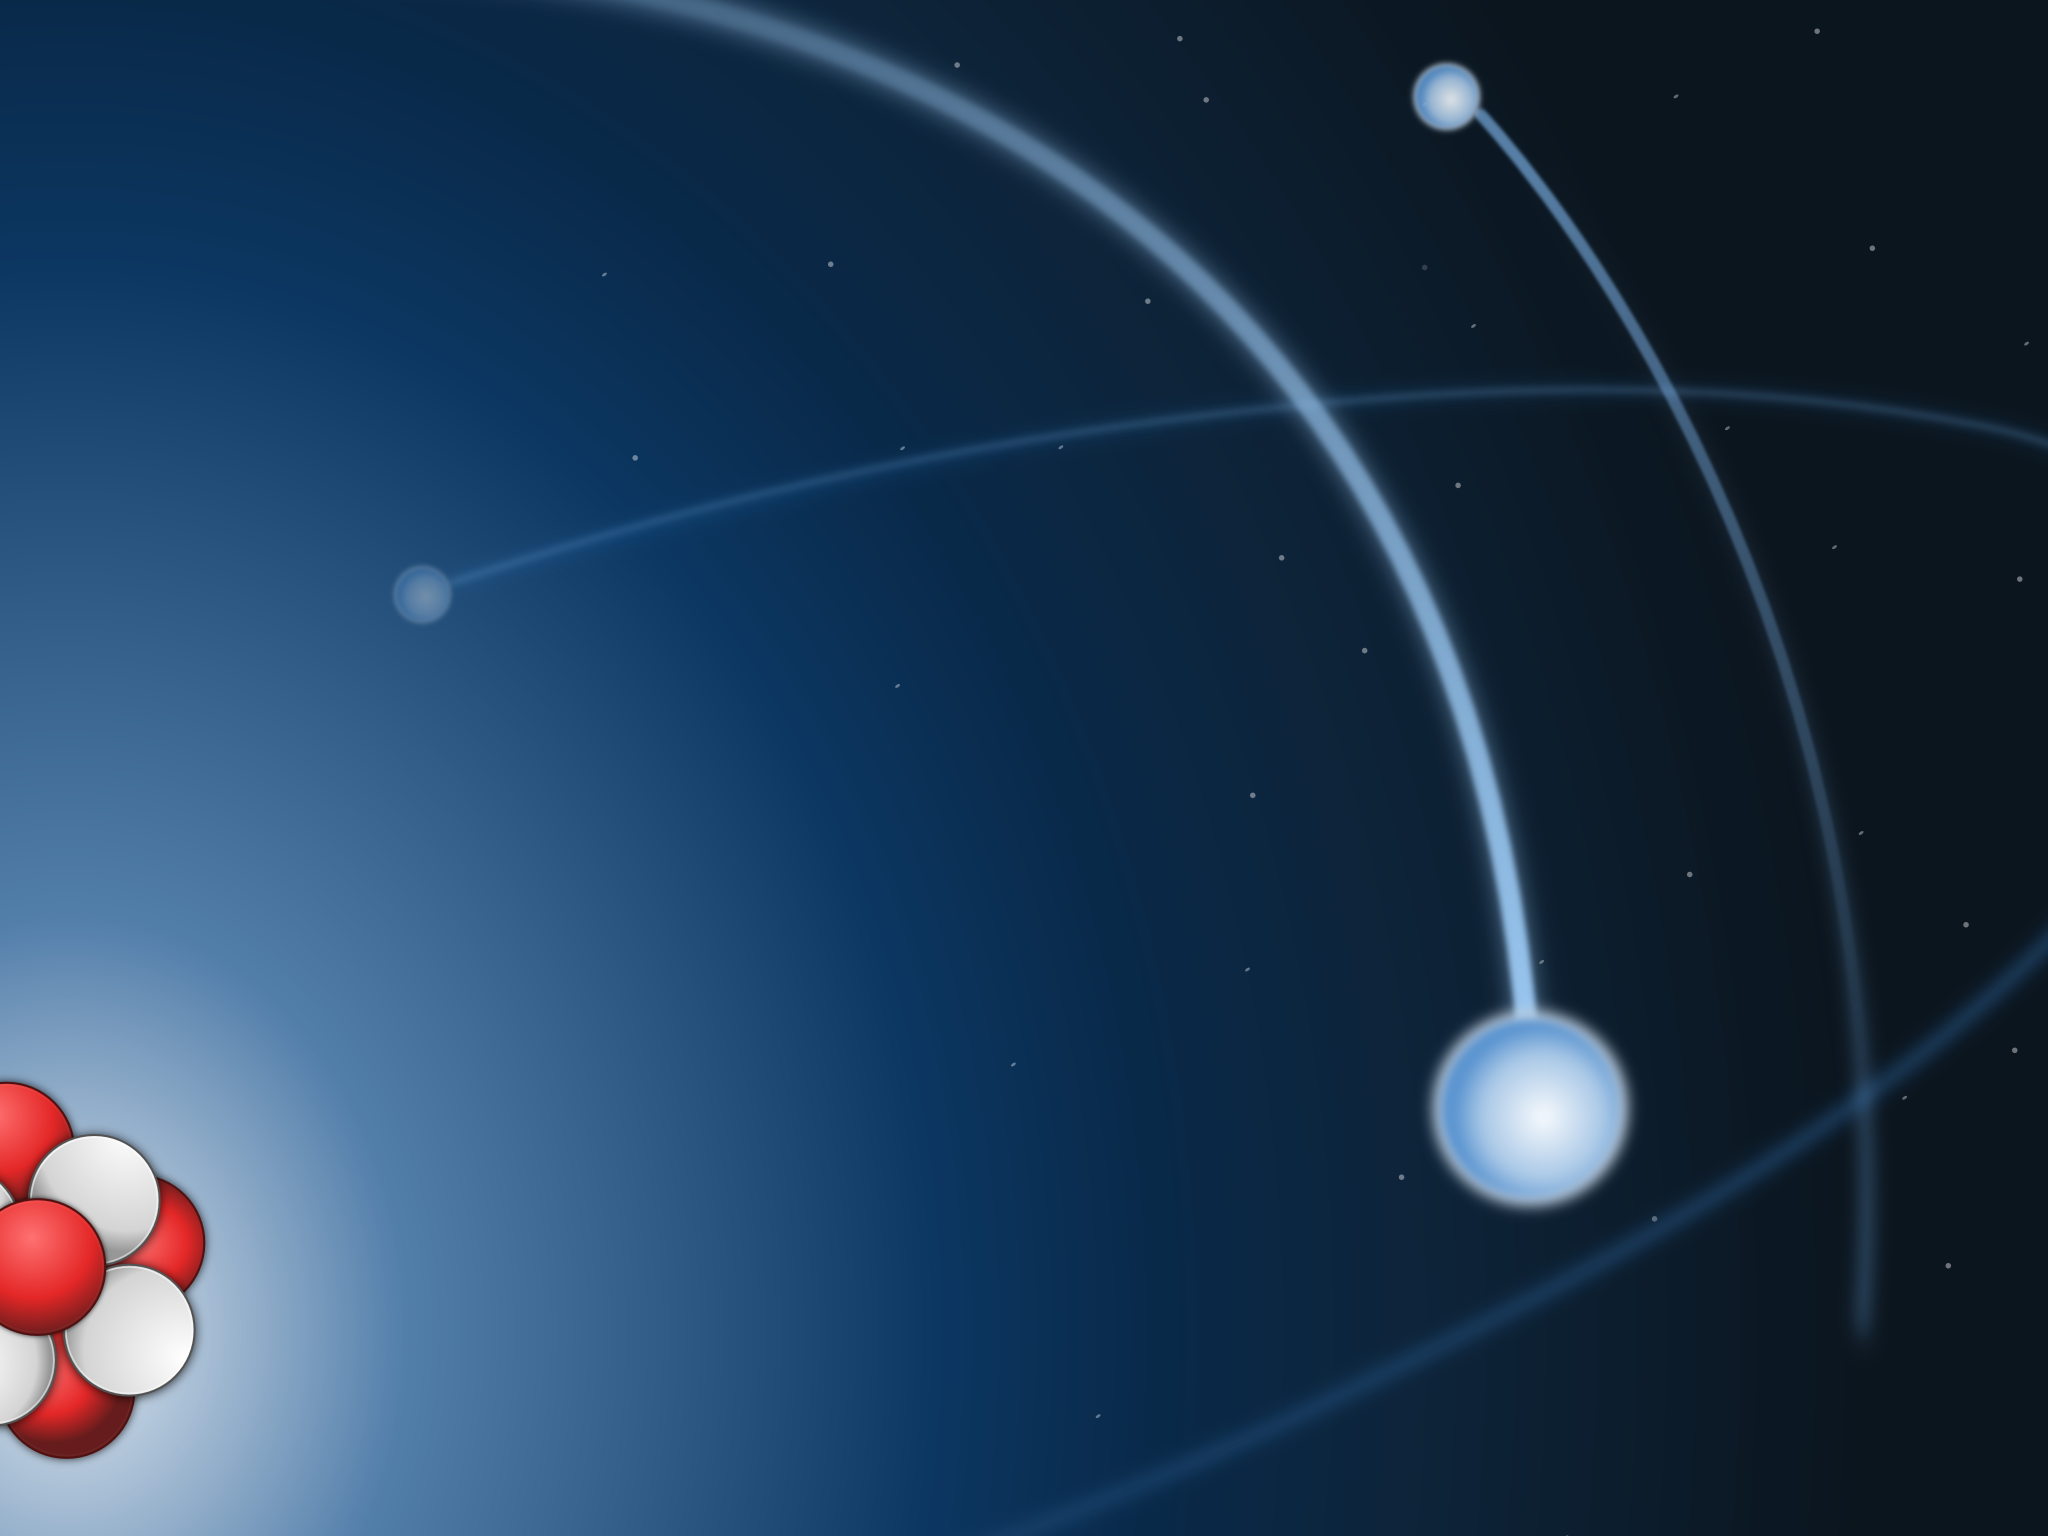 Index of /linux/scientific/graphics/version-3/backgrounds